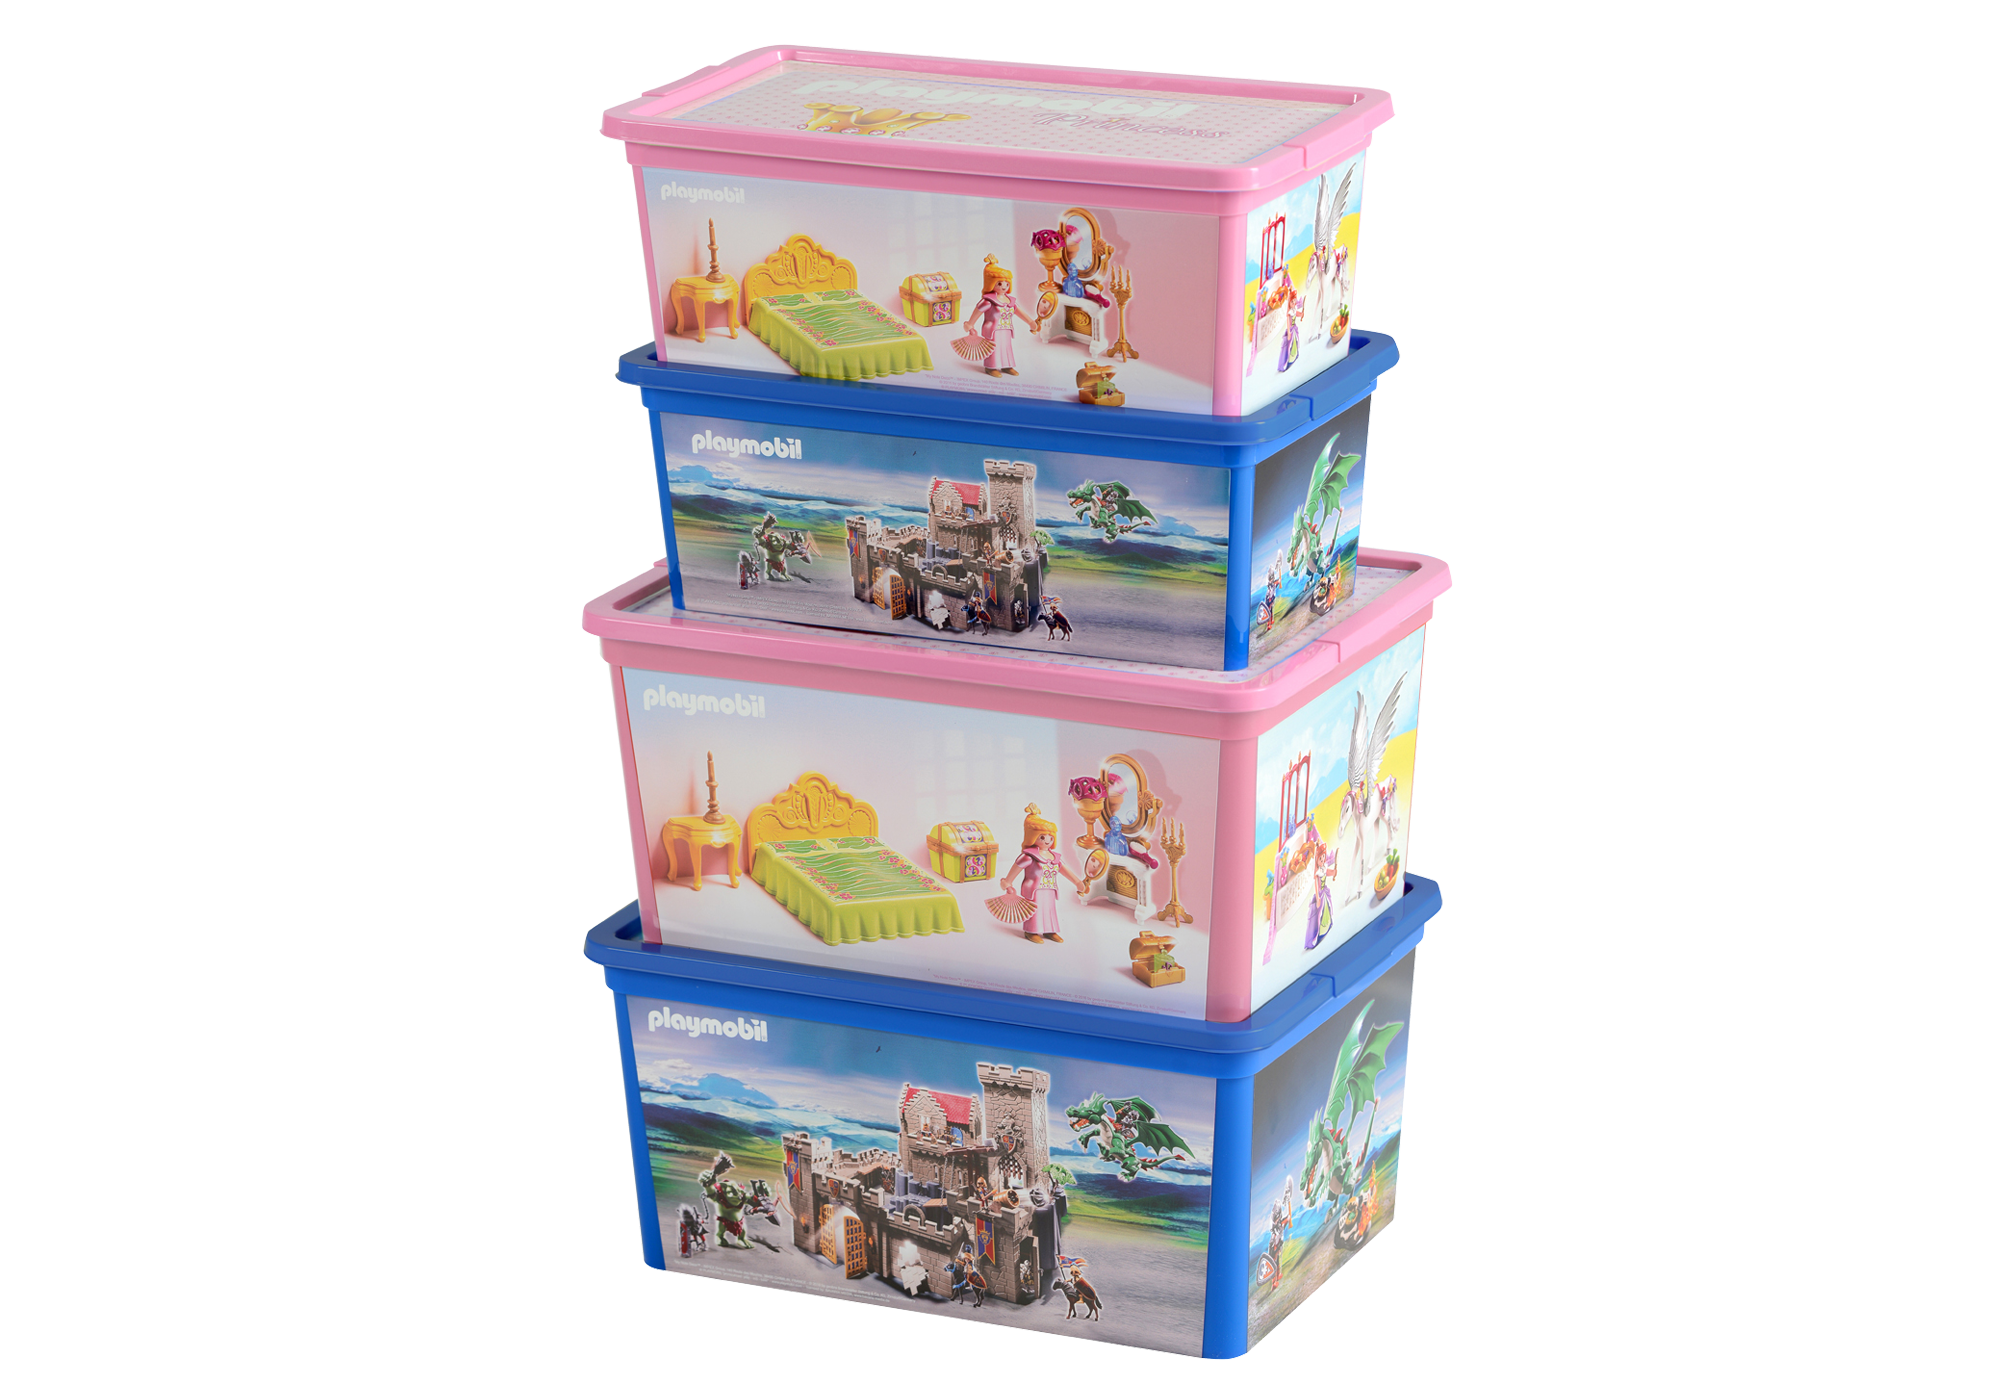 http://media.playmobil.com/i/playmobil/80490_product_extra1/6L Prinzessinen Aufbewahrungsbox